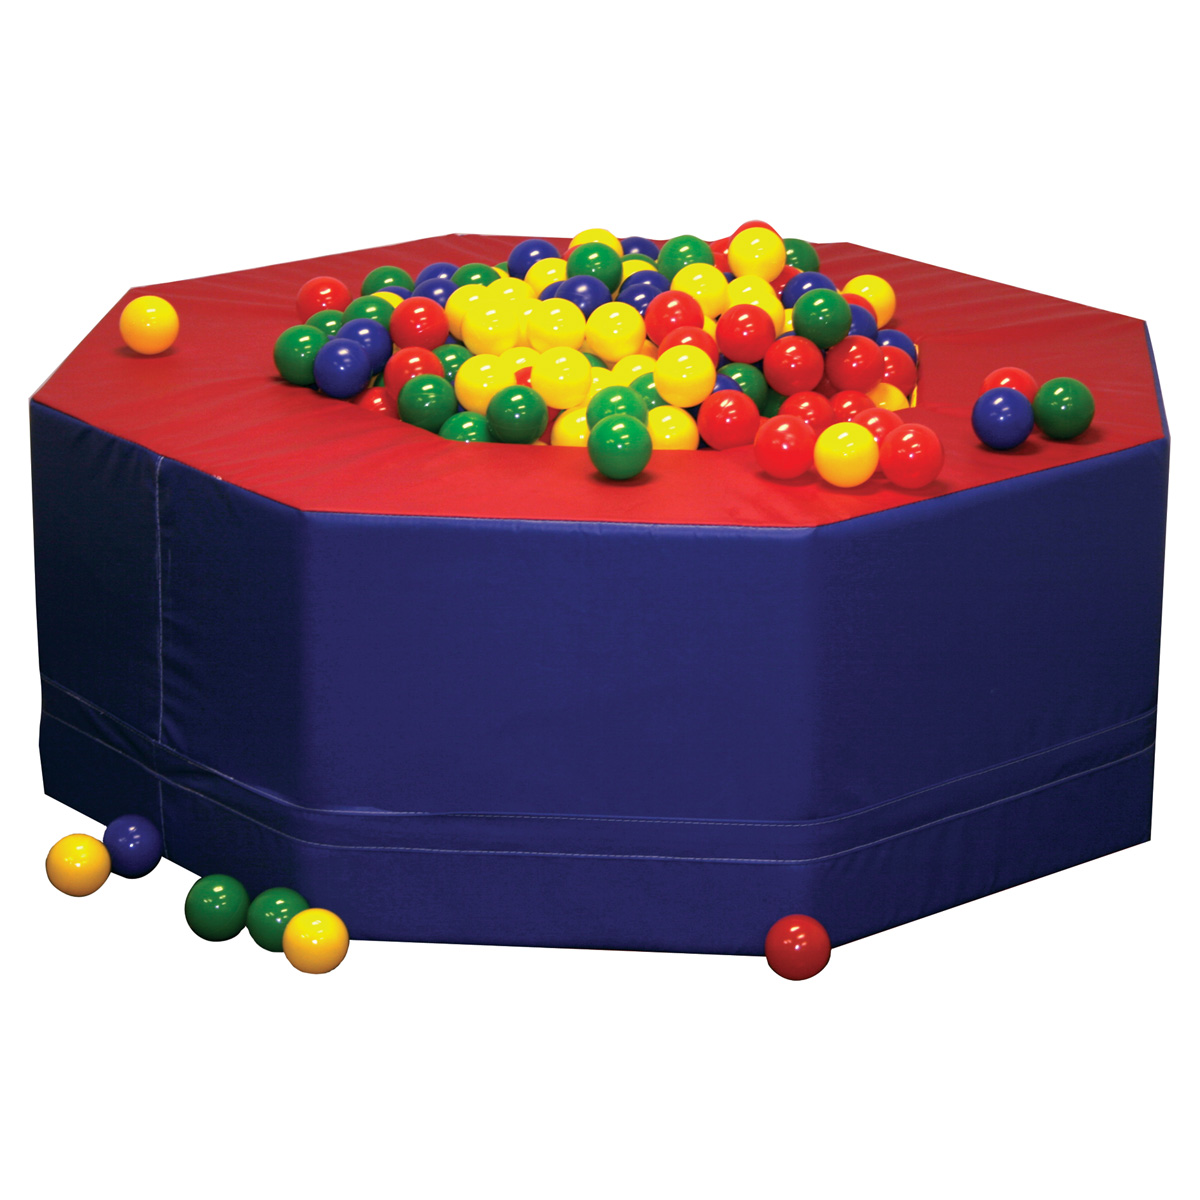 mill ball pool pit